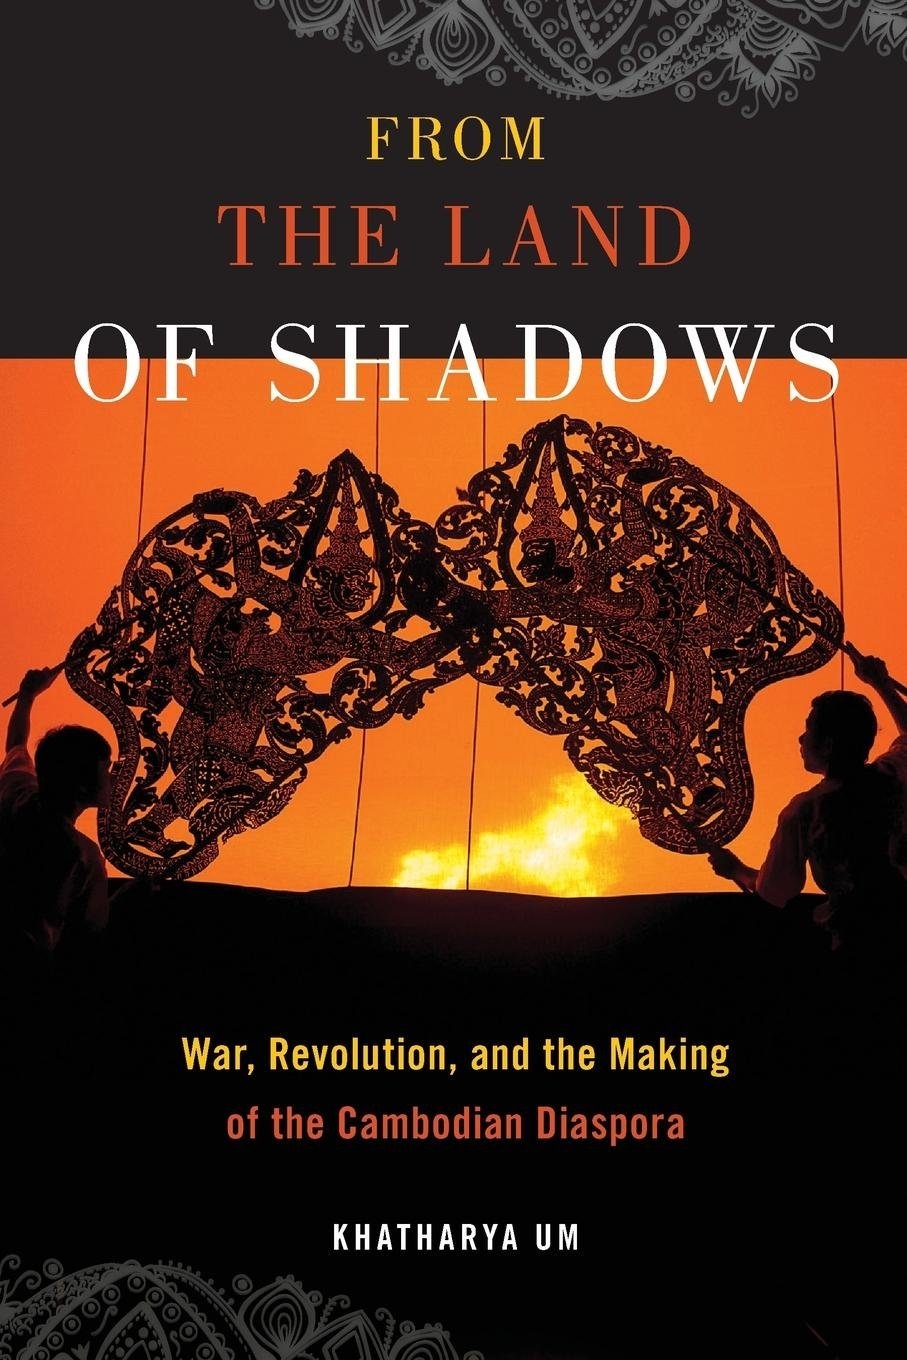 From the Land of Shadows: War, Revolution, and the Making of the Cambodian Diaspora (Nation of Nations) pdf